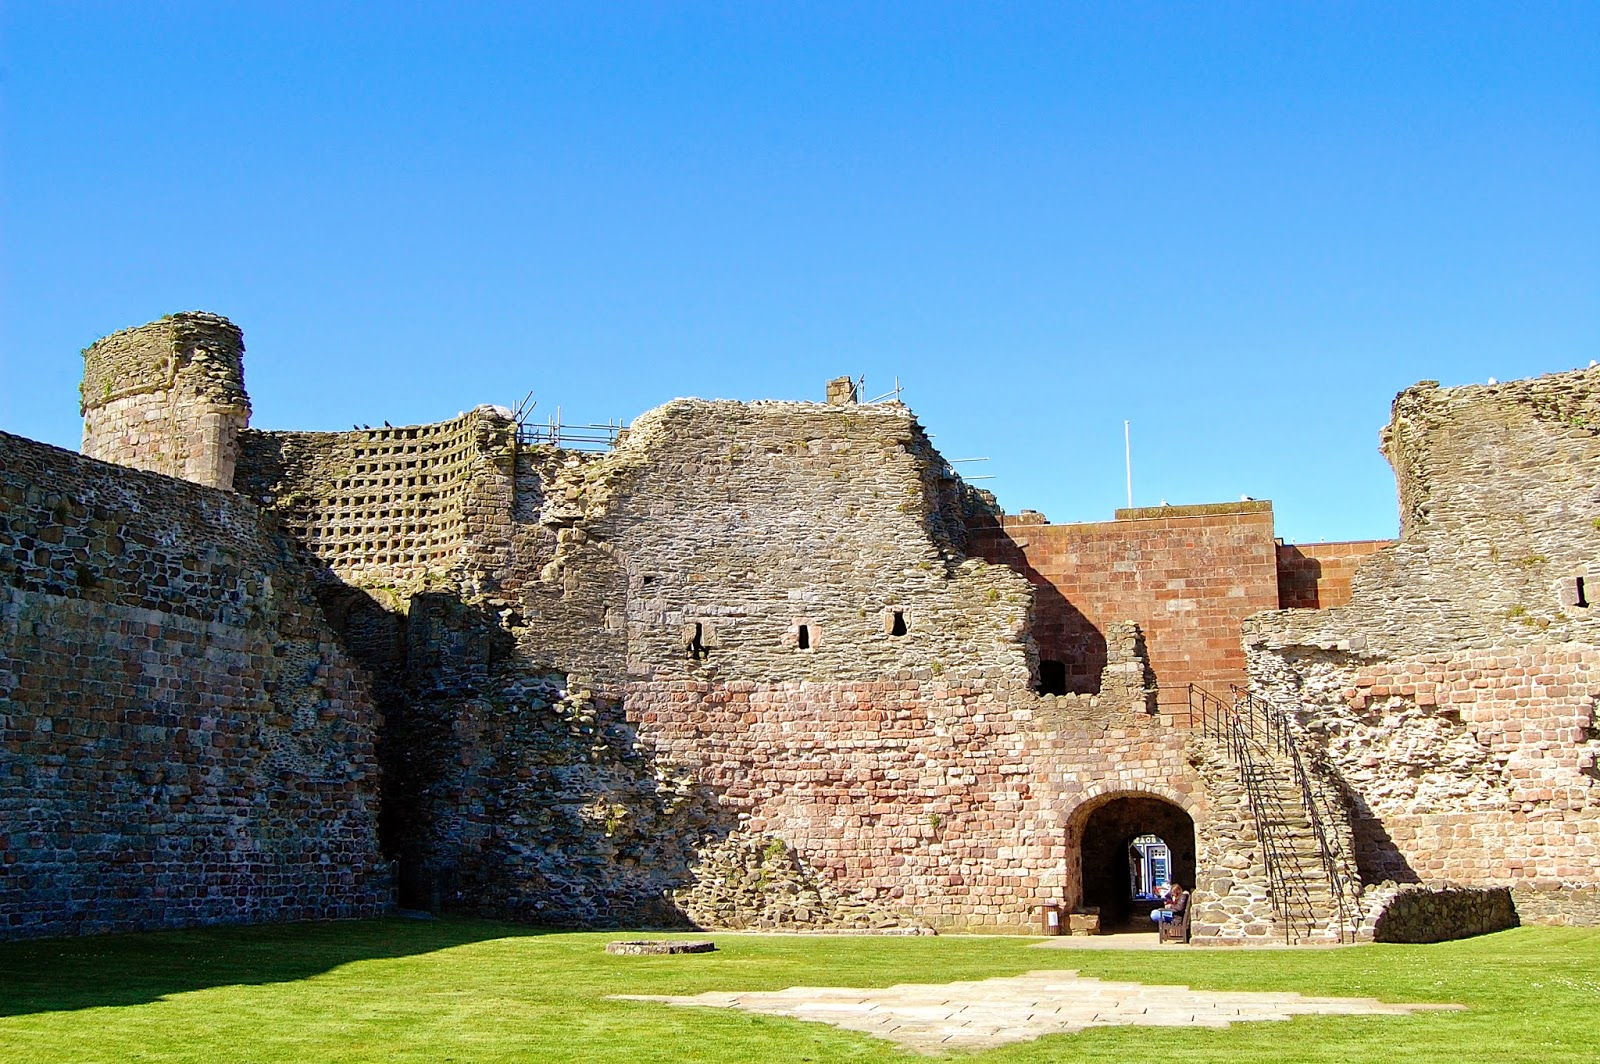 Barren interior of Rothesay Castle